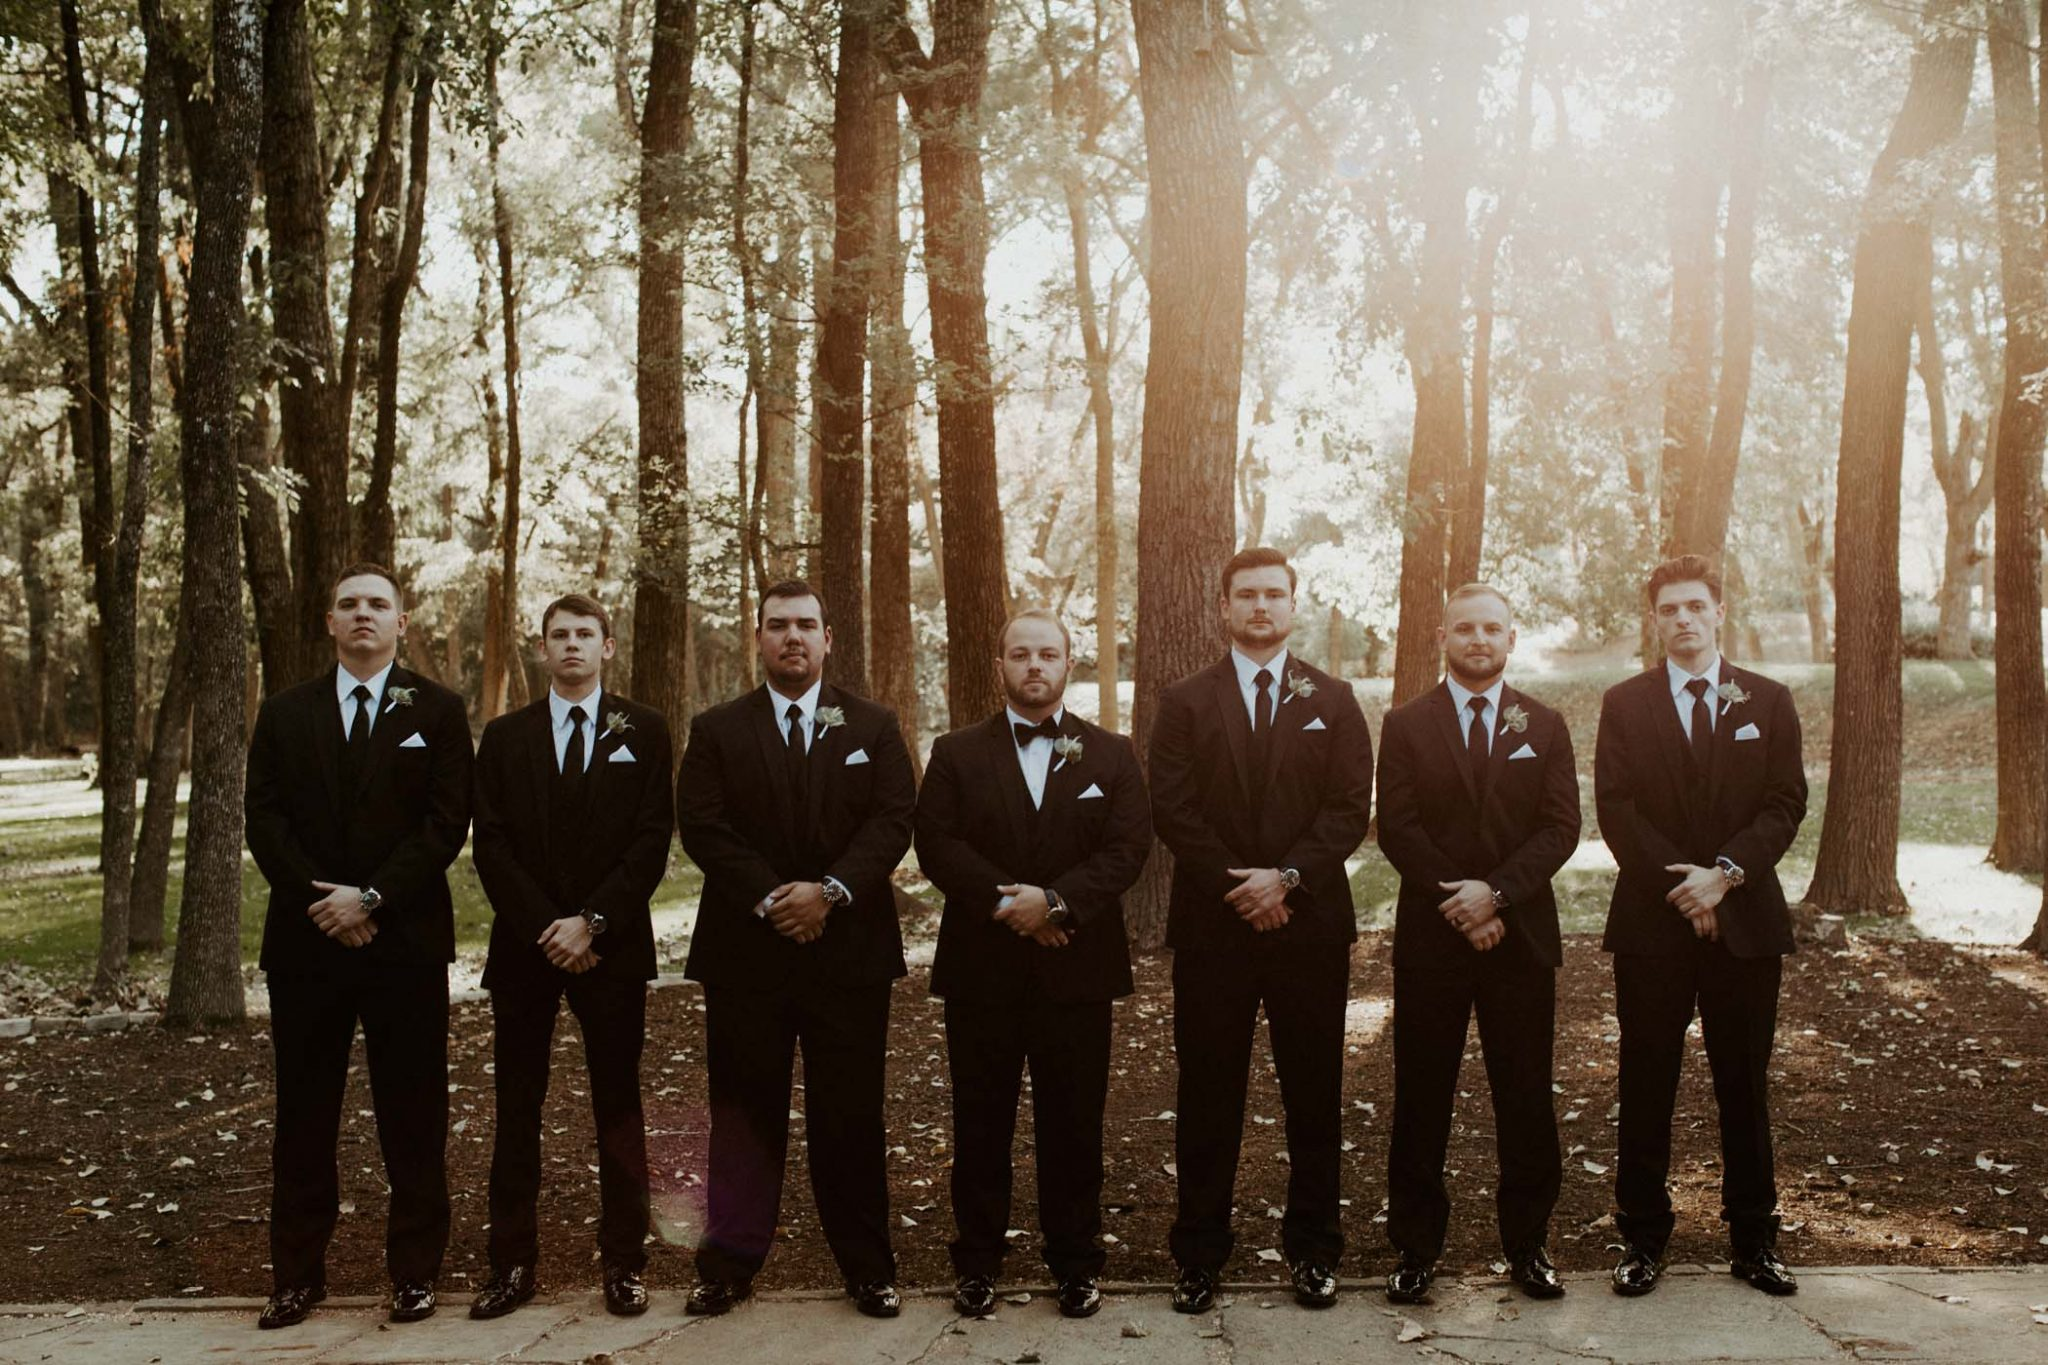 formal groomsmen photo during wedding day in north texas